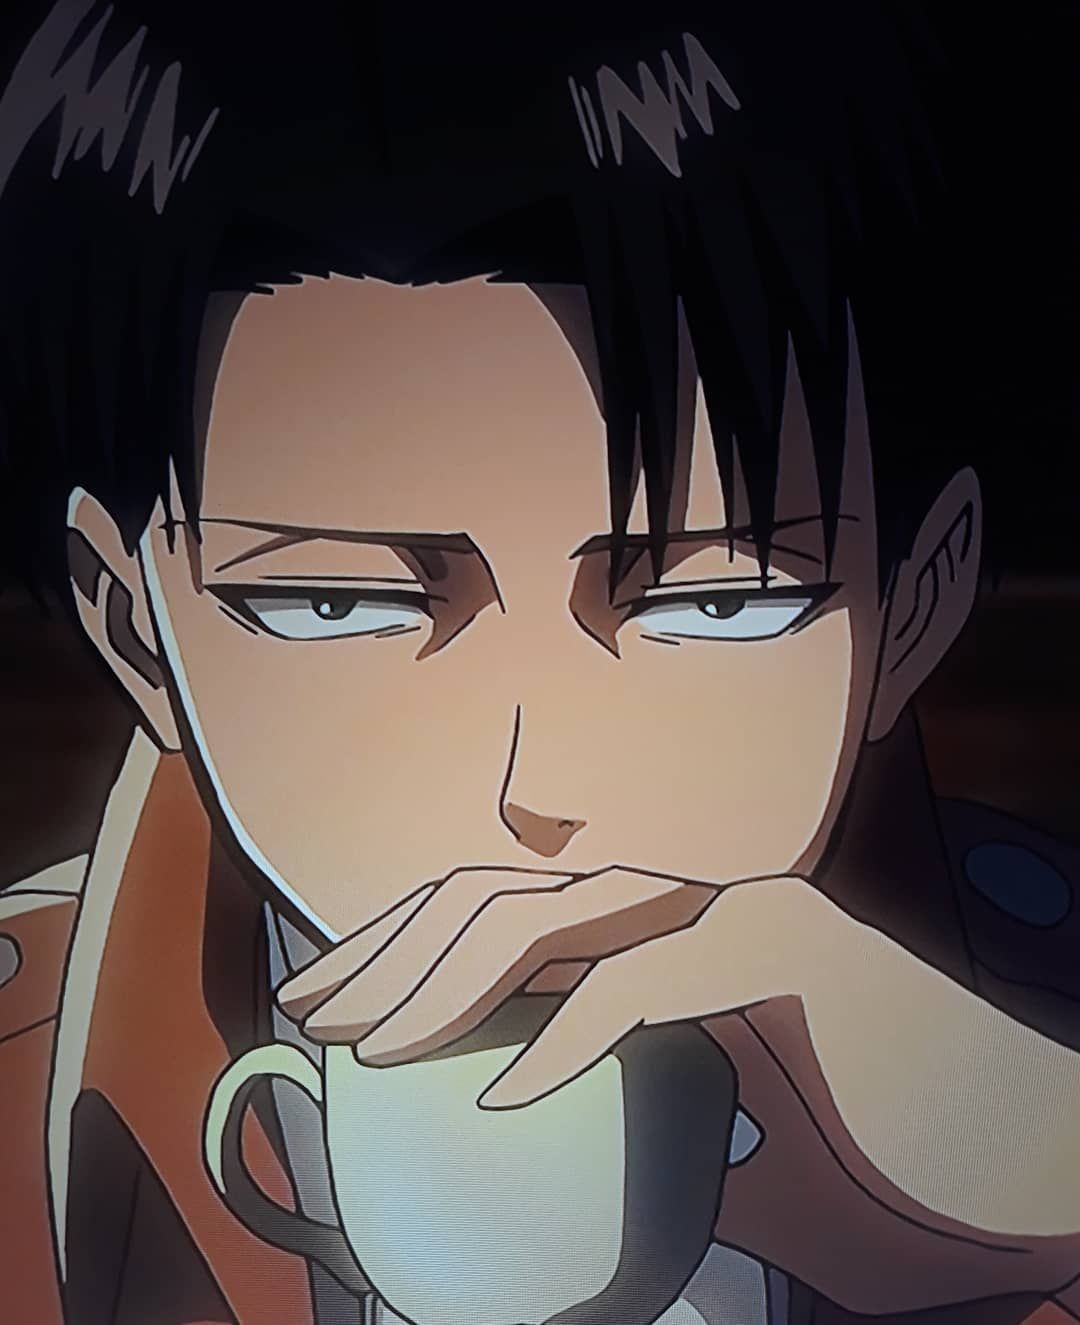 500 For Ashley Ideas In 2020 Attack On Titan Levi Levi Ackerman Captain Levi